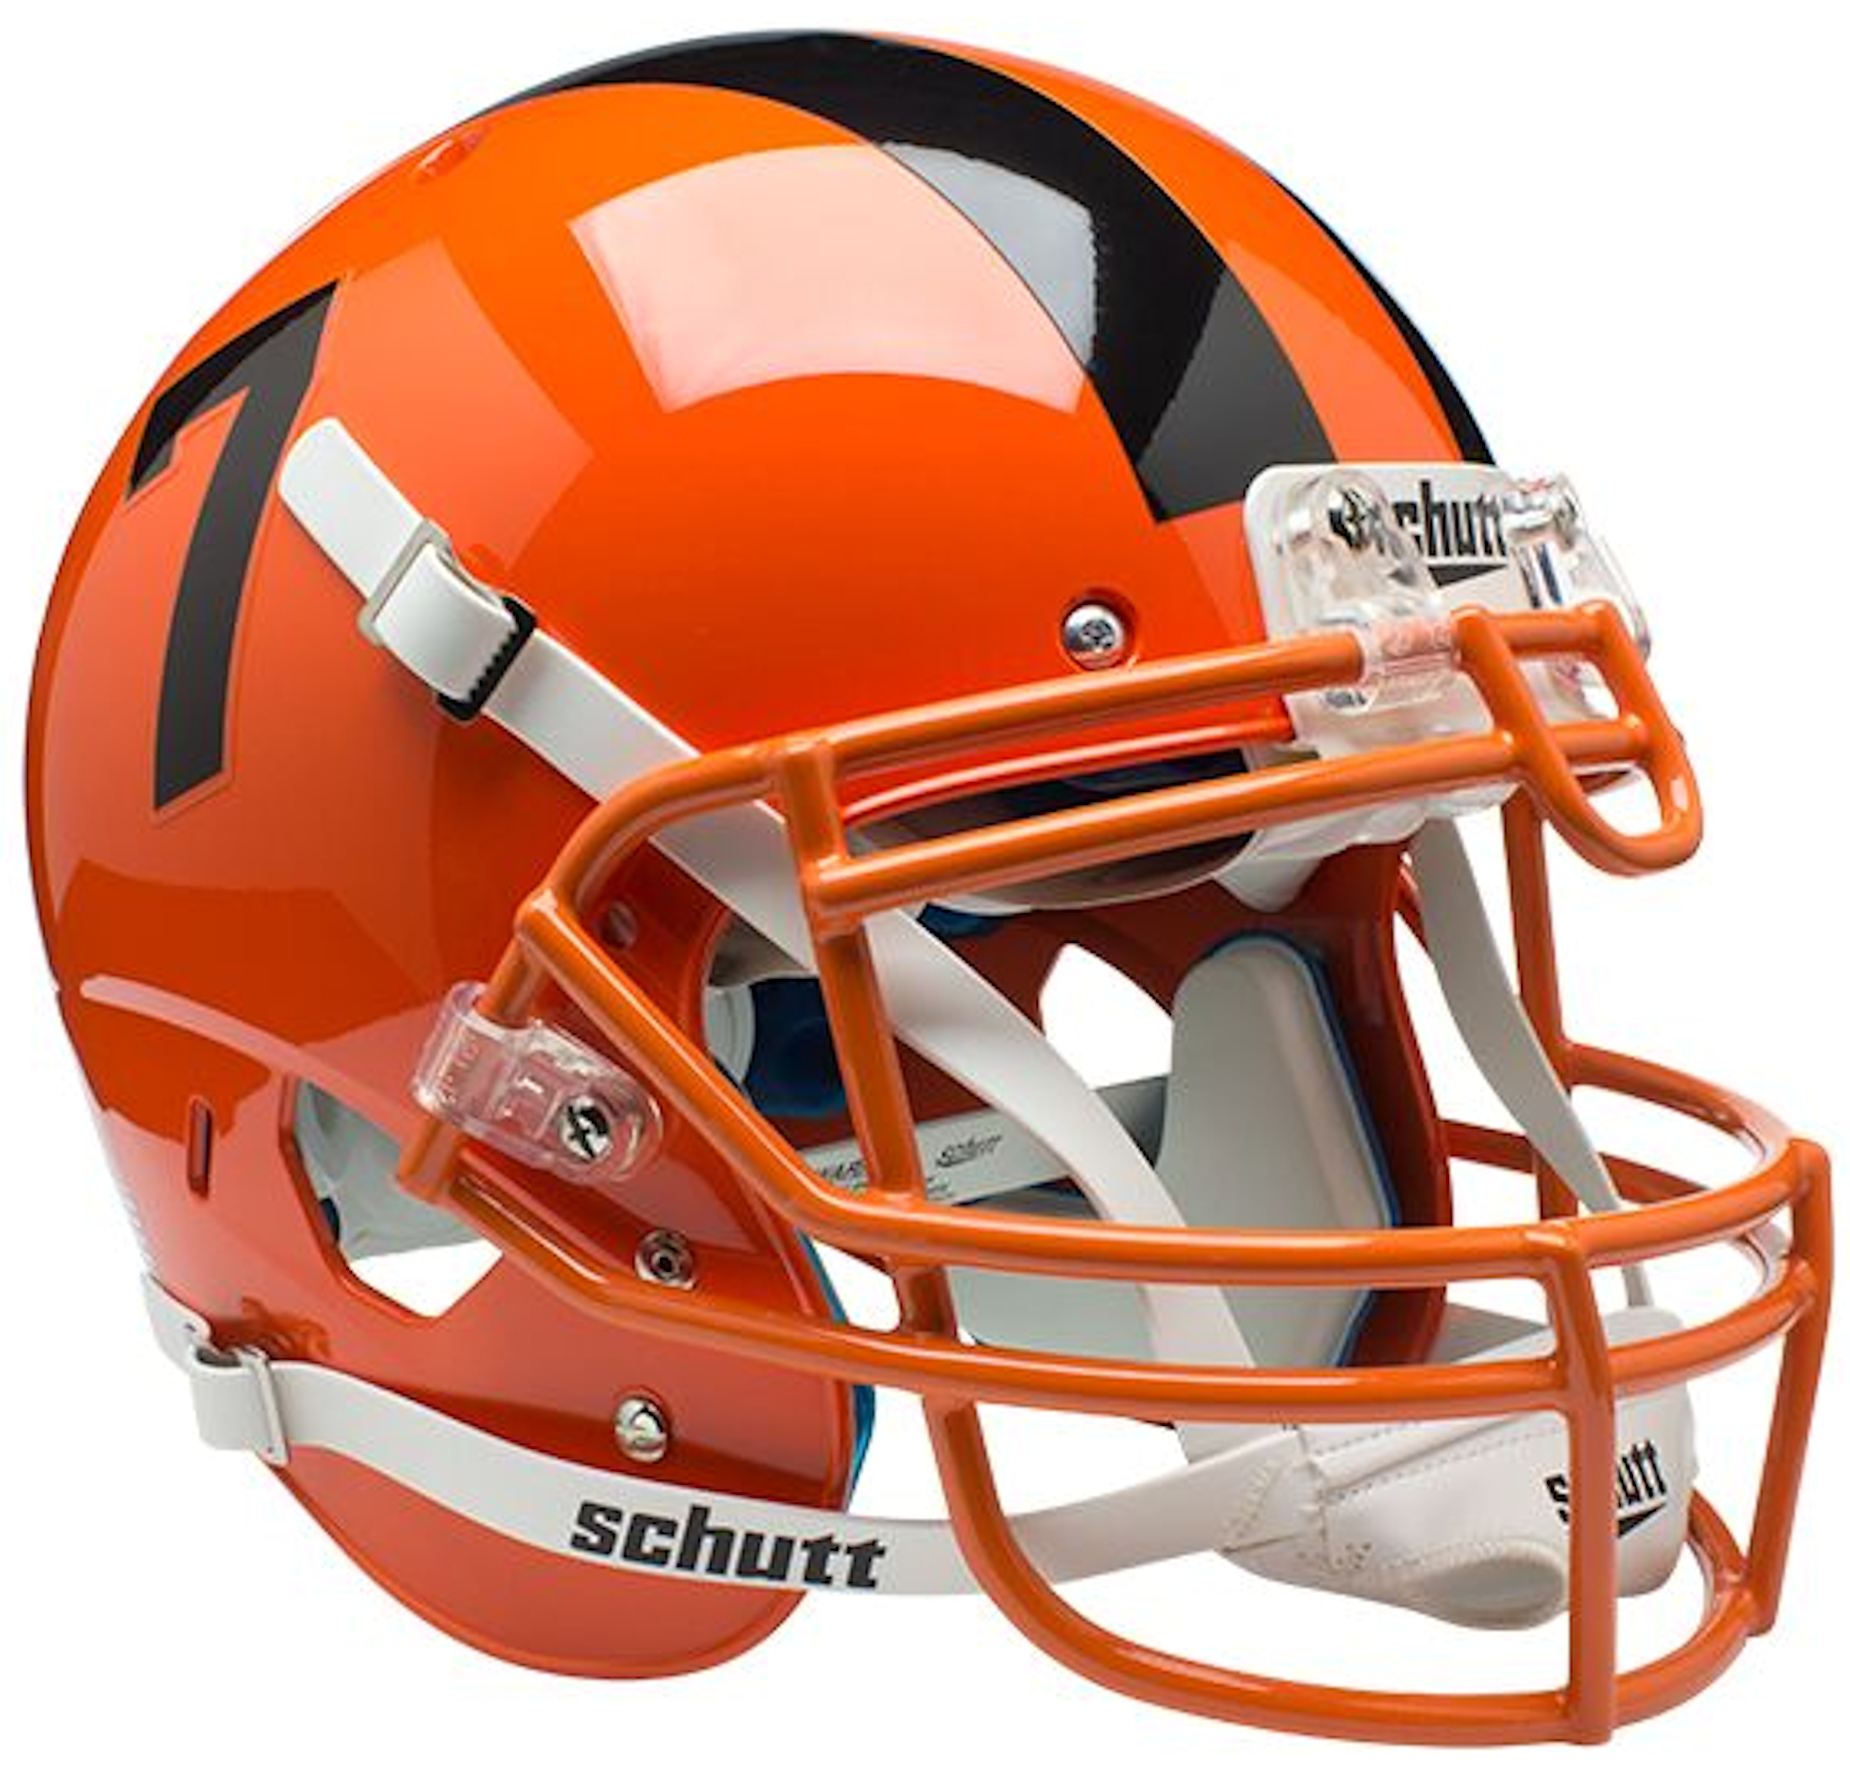 Oregon State Beavers Authentic College XP Football Helmet Schutt <B>Orange</B>